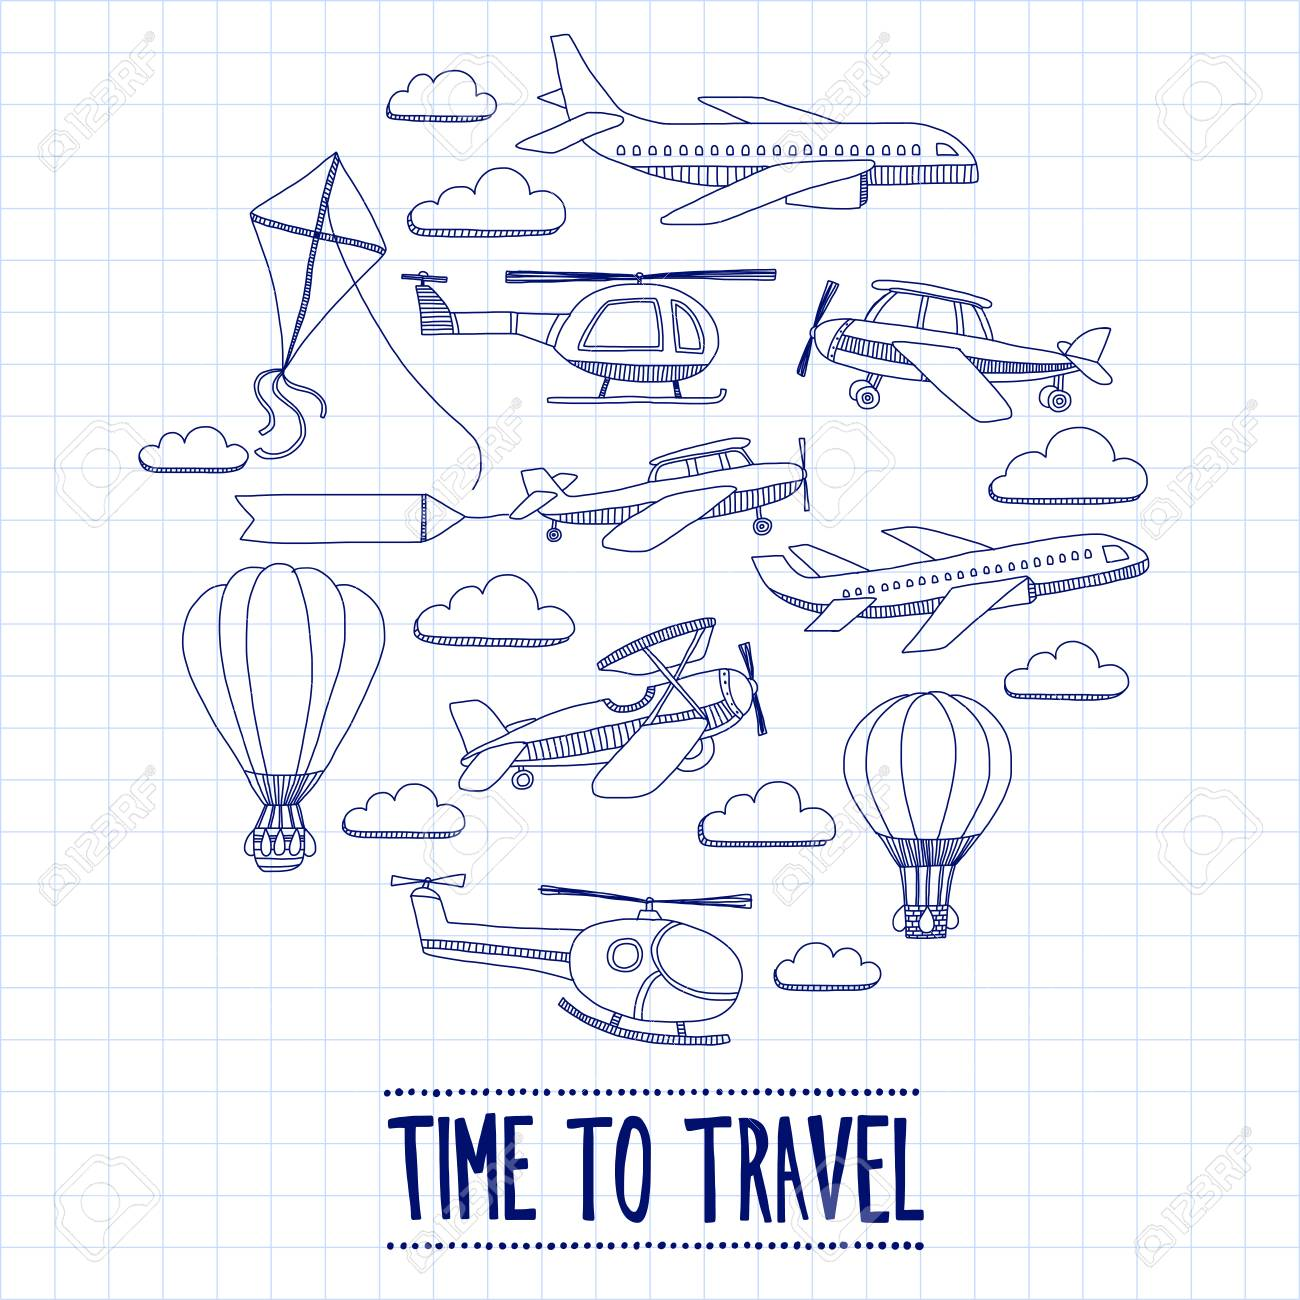 Doodle set of images Time to travel Hand drawn picture - 54463692